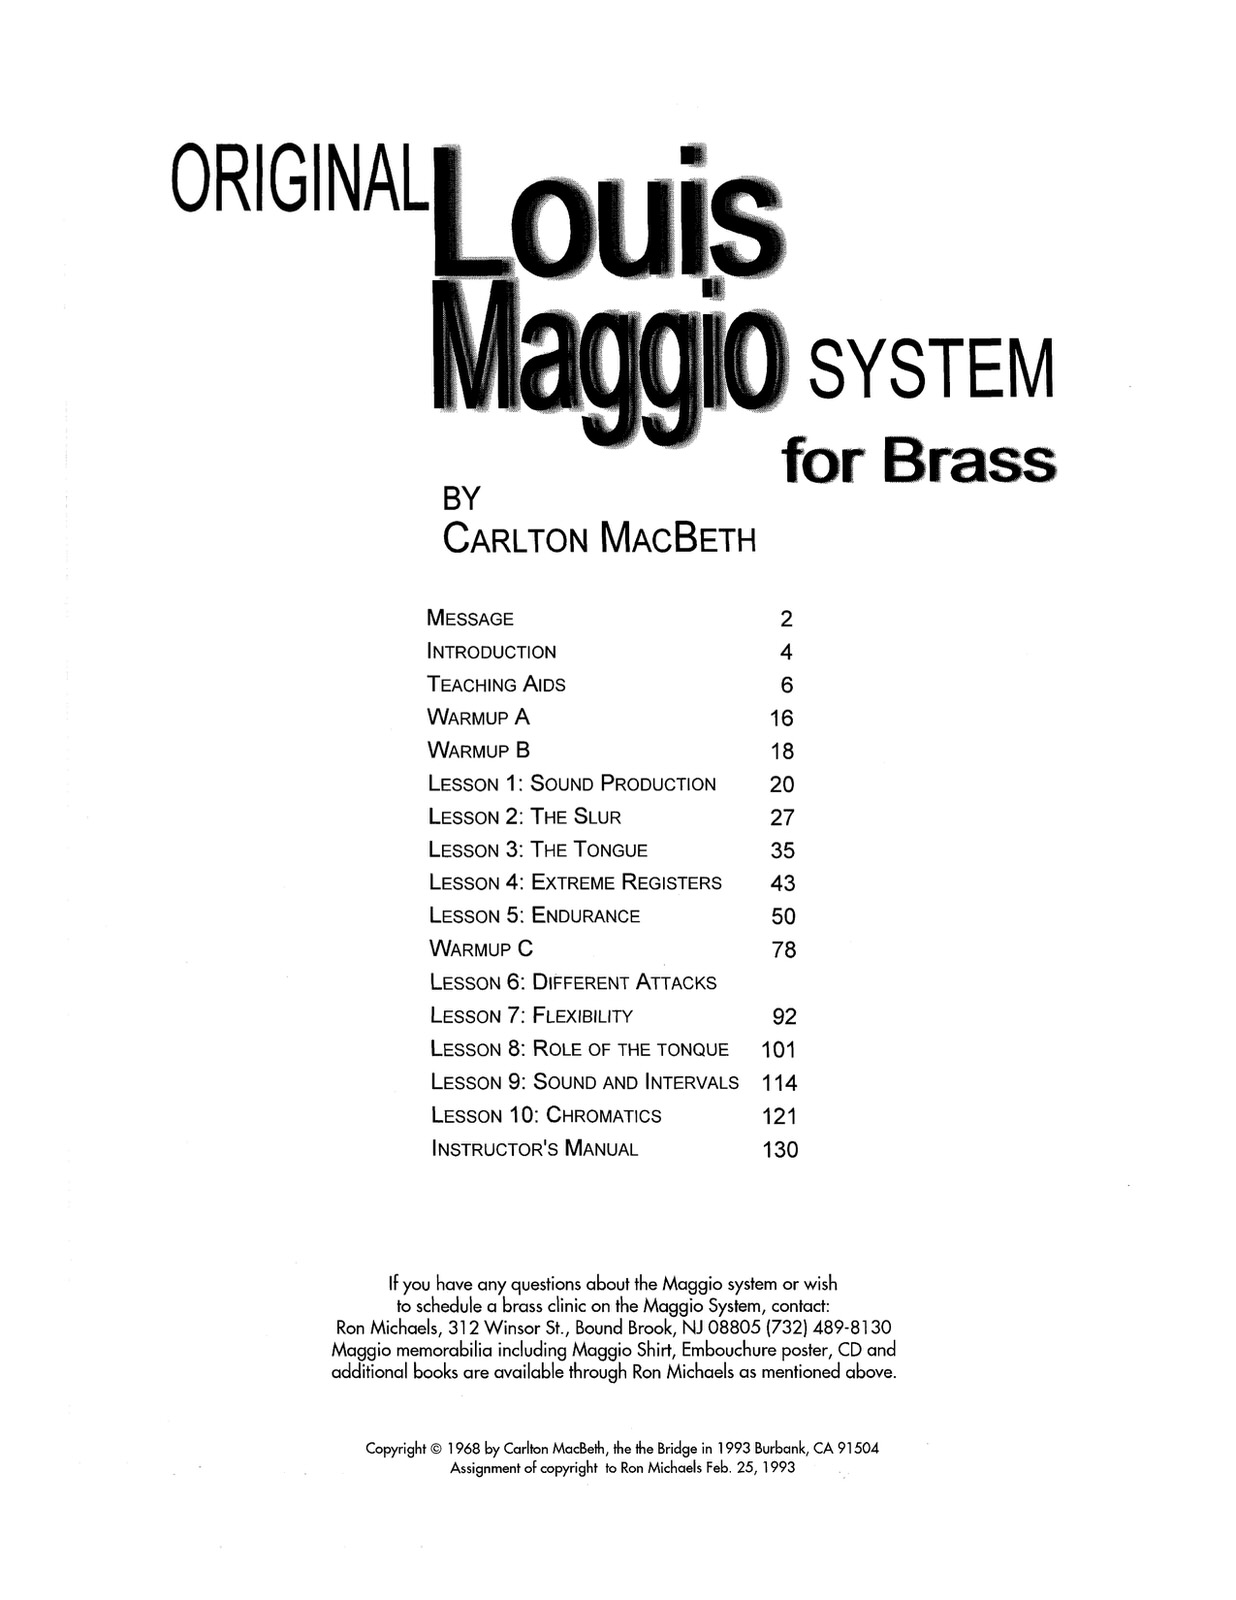 Maggio, System For Brass 2